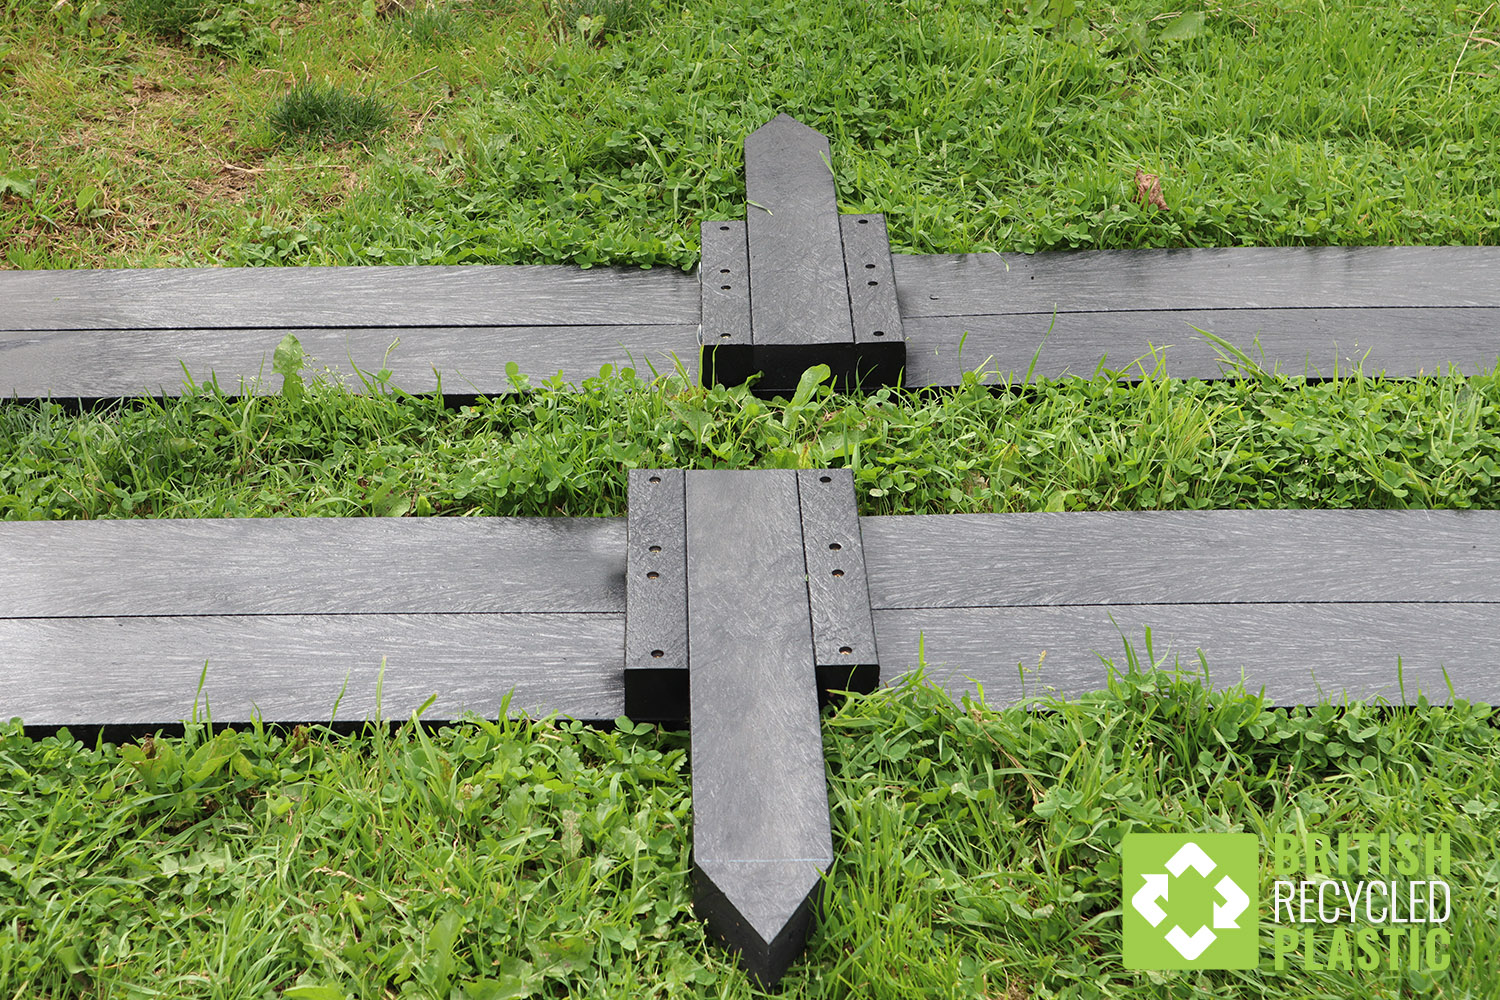 For 2 metre and 3 metre raised beds, the sections are held together with stakes at the joins